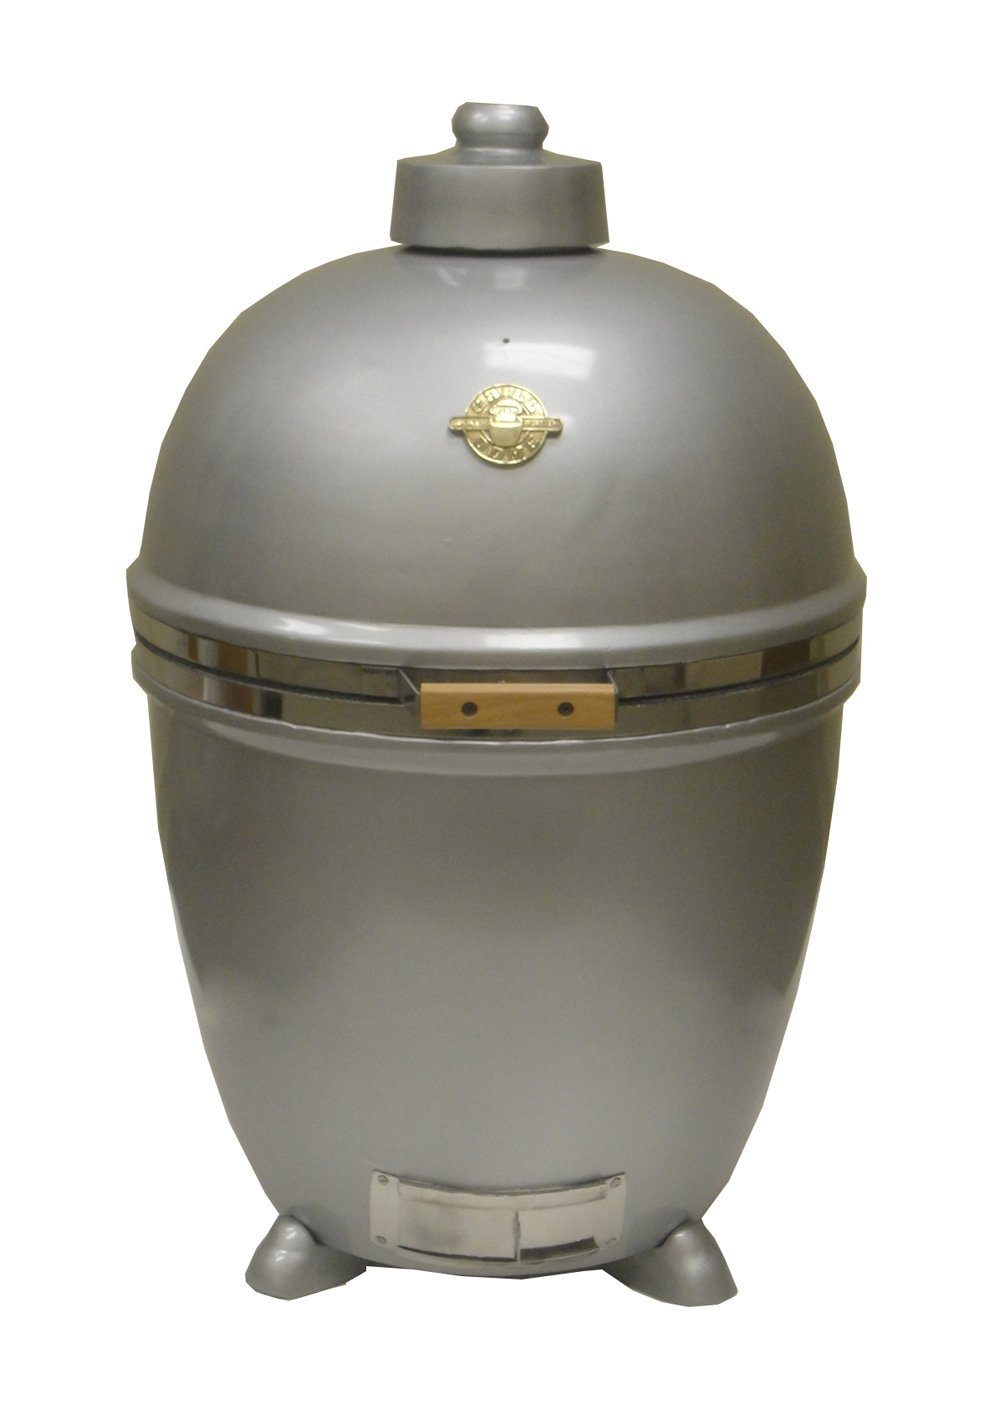 Grill Dome Infinity Series Ceramic Kamado Charcoal Smoker Grill Review